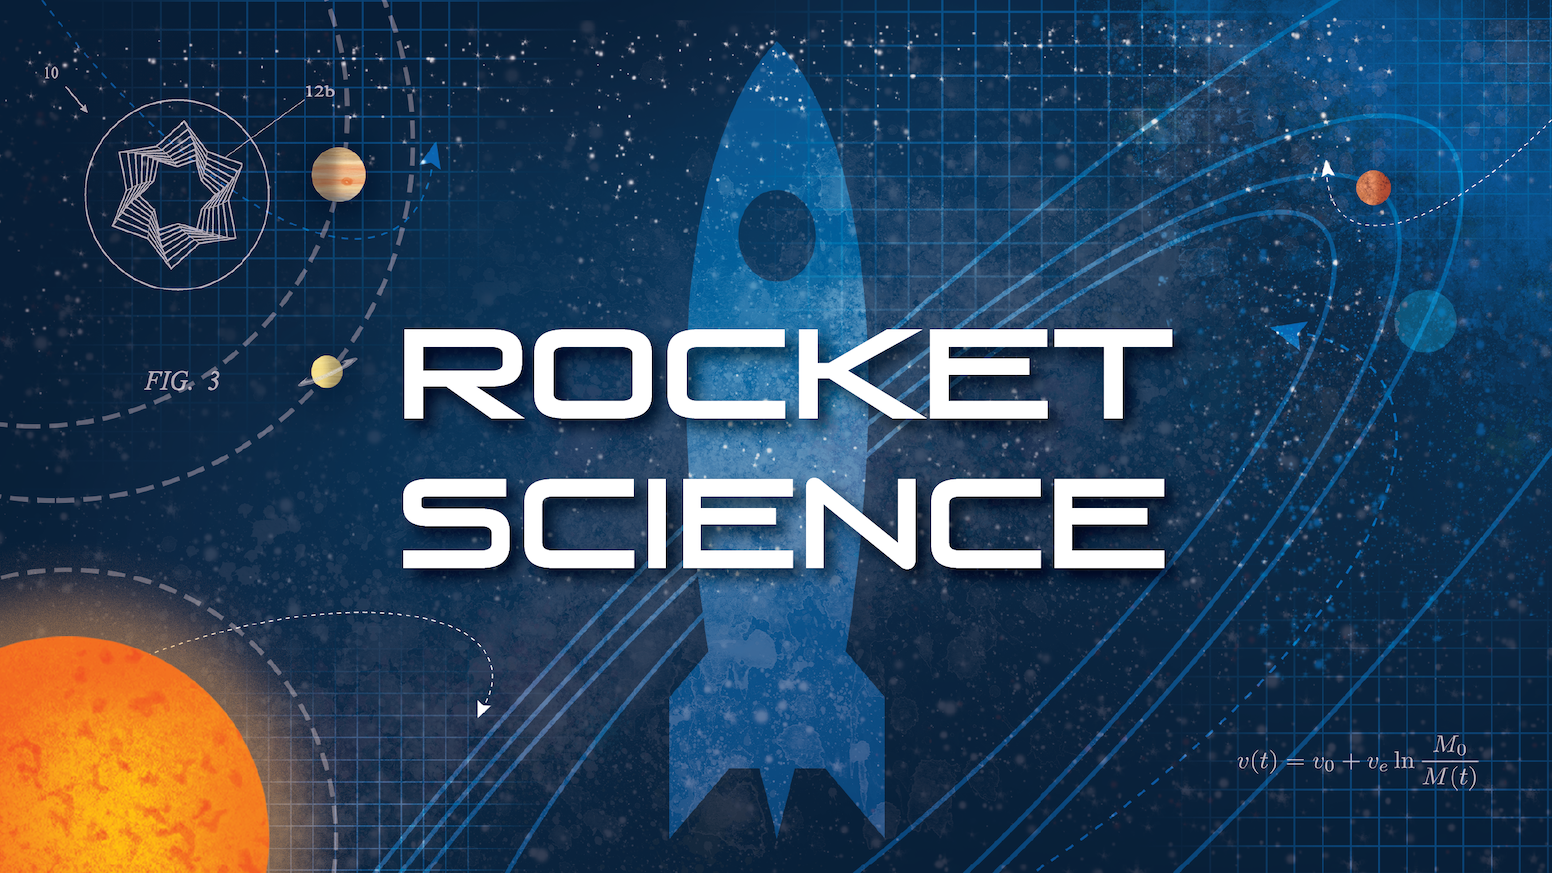 Ever wonder how spaceships work? Learn about spacecraft technology and planetary exploration with aerospace engineer Andrew Rader.